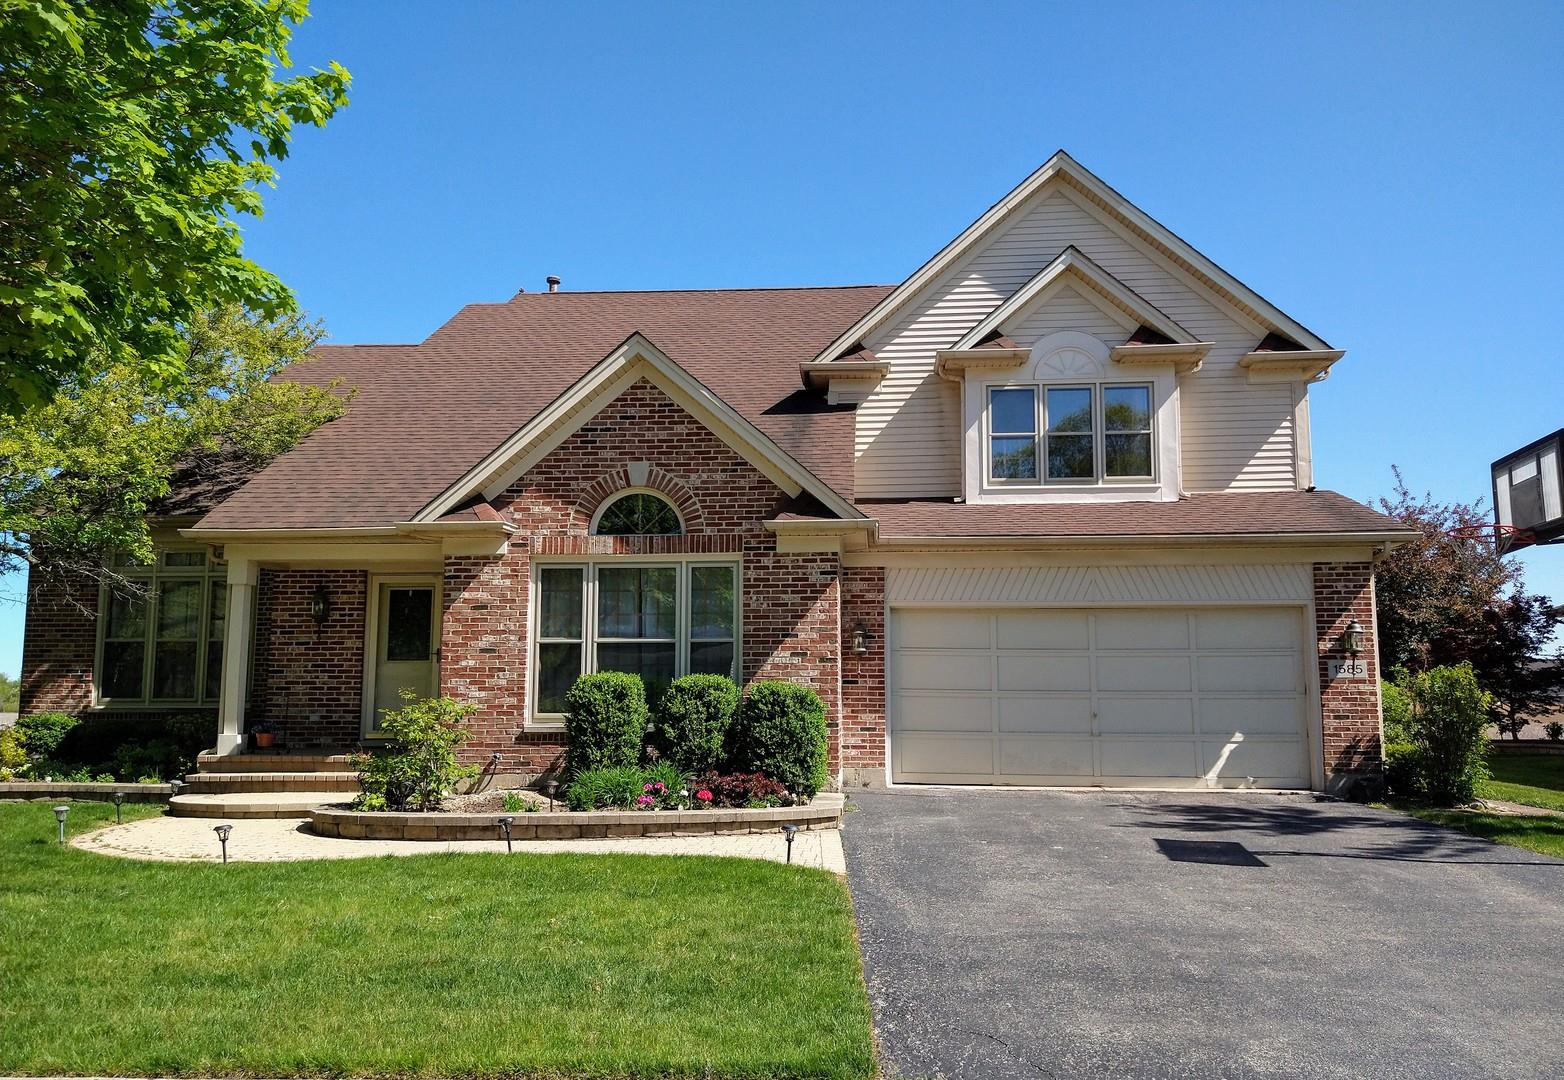 1585 Crowfoot Circle S, Hoffman Estates, IL 60169 - #: 11086754